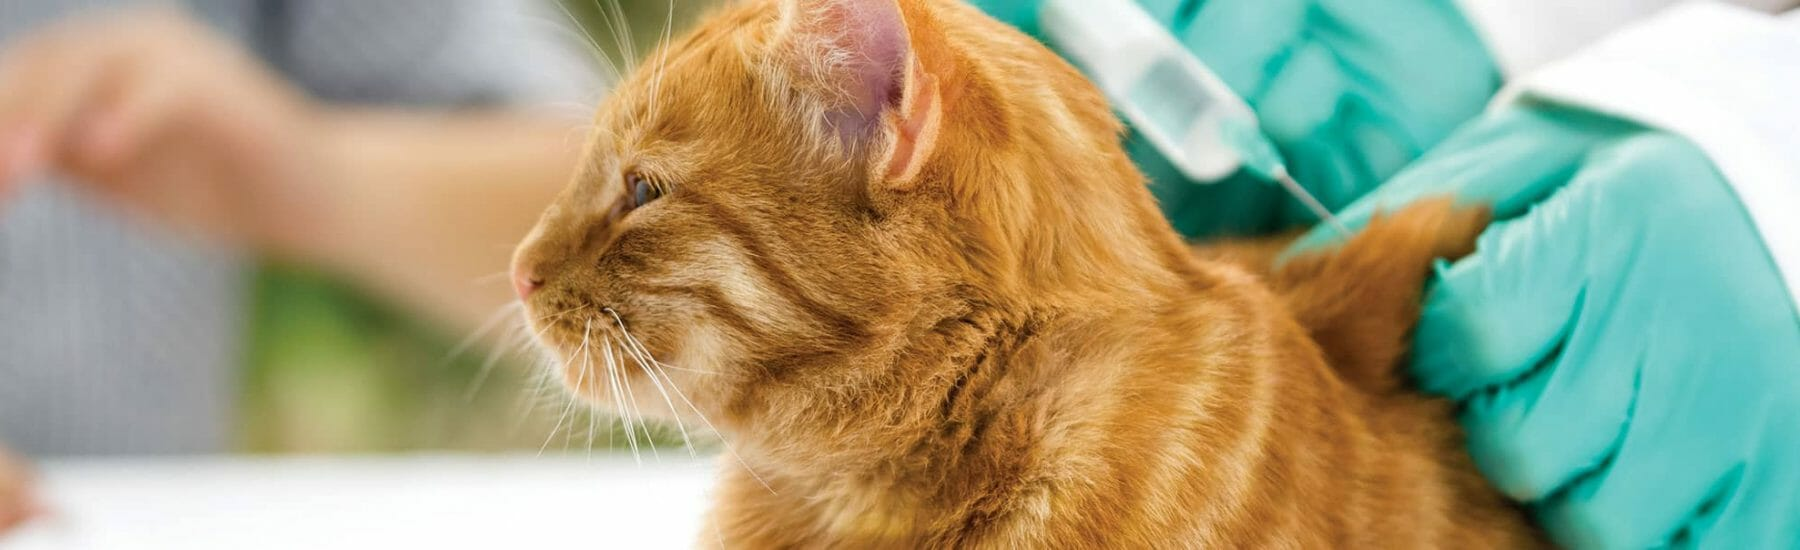 A ginger cat gets their vaccination.